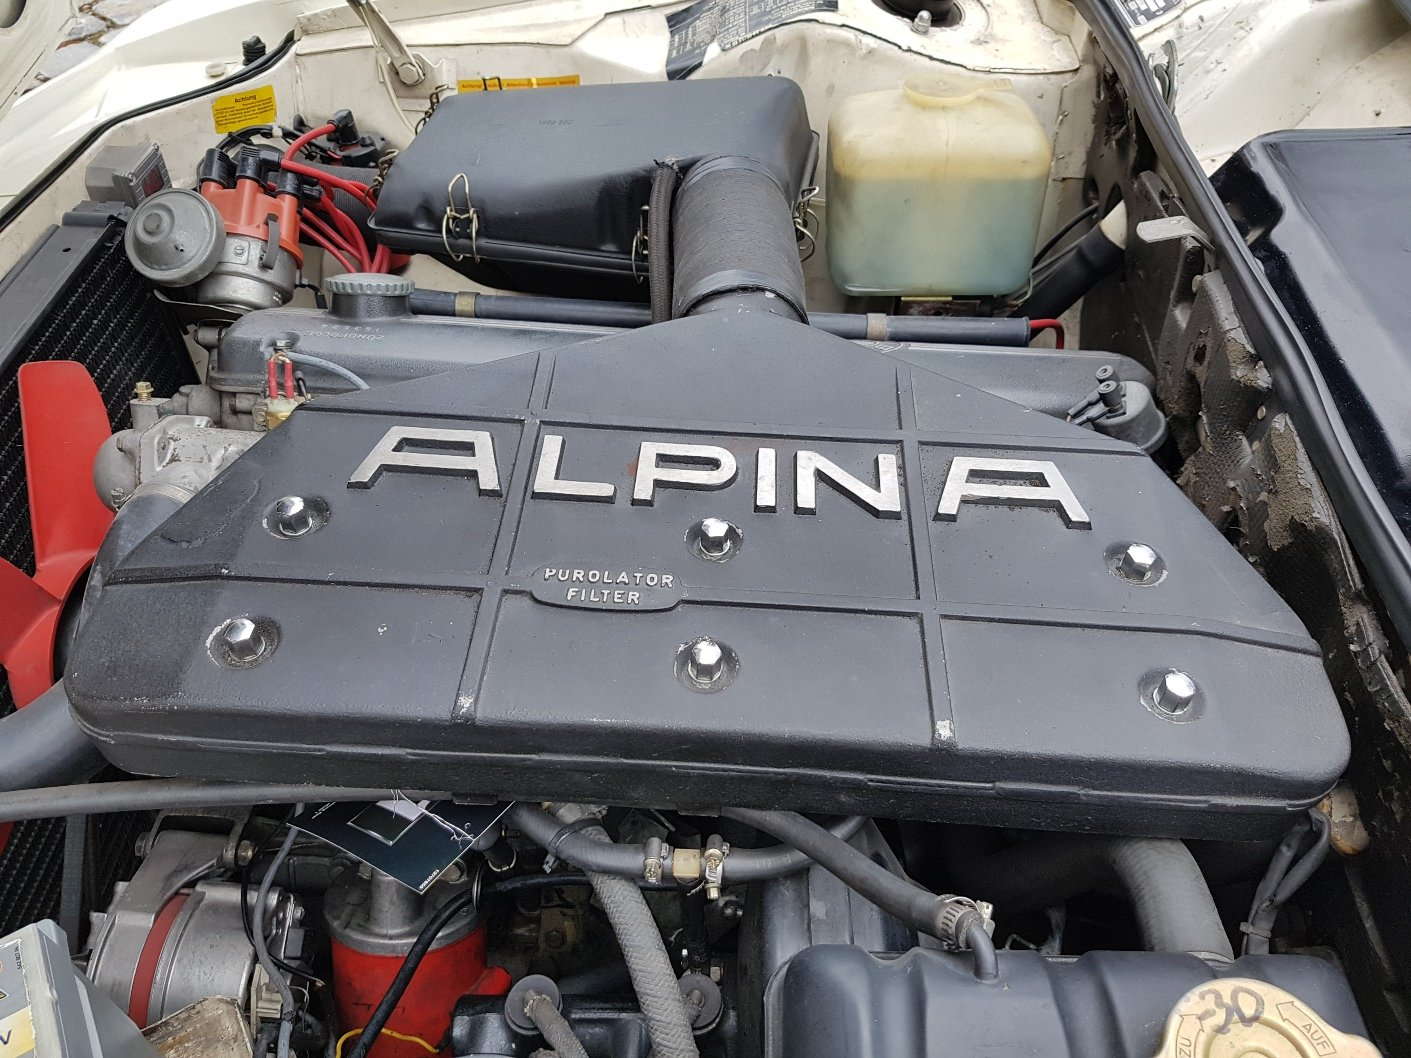 1972 ALPINA B2 3.0 Coupé, 21 years with first owner For Sale (picture 4 of 6)